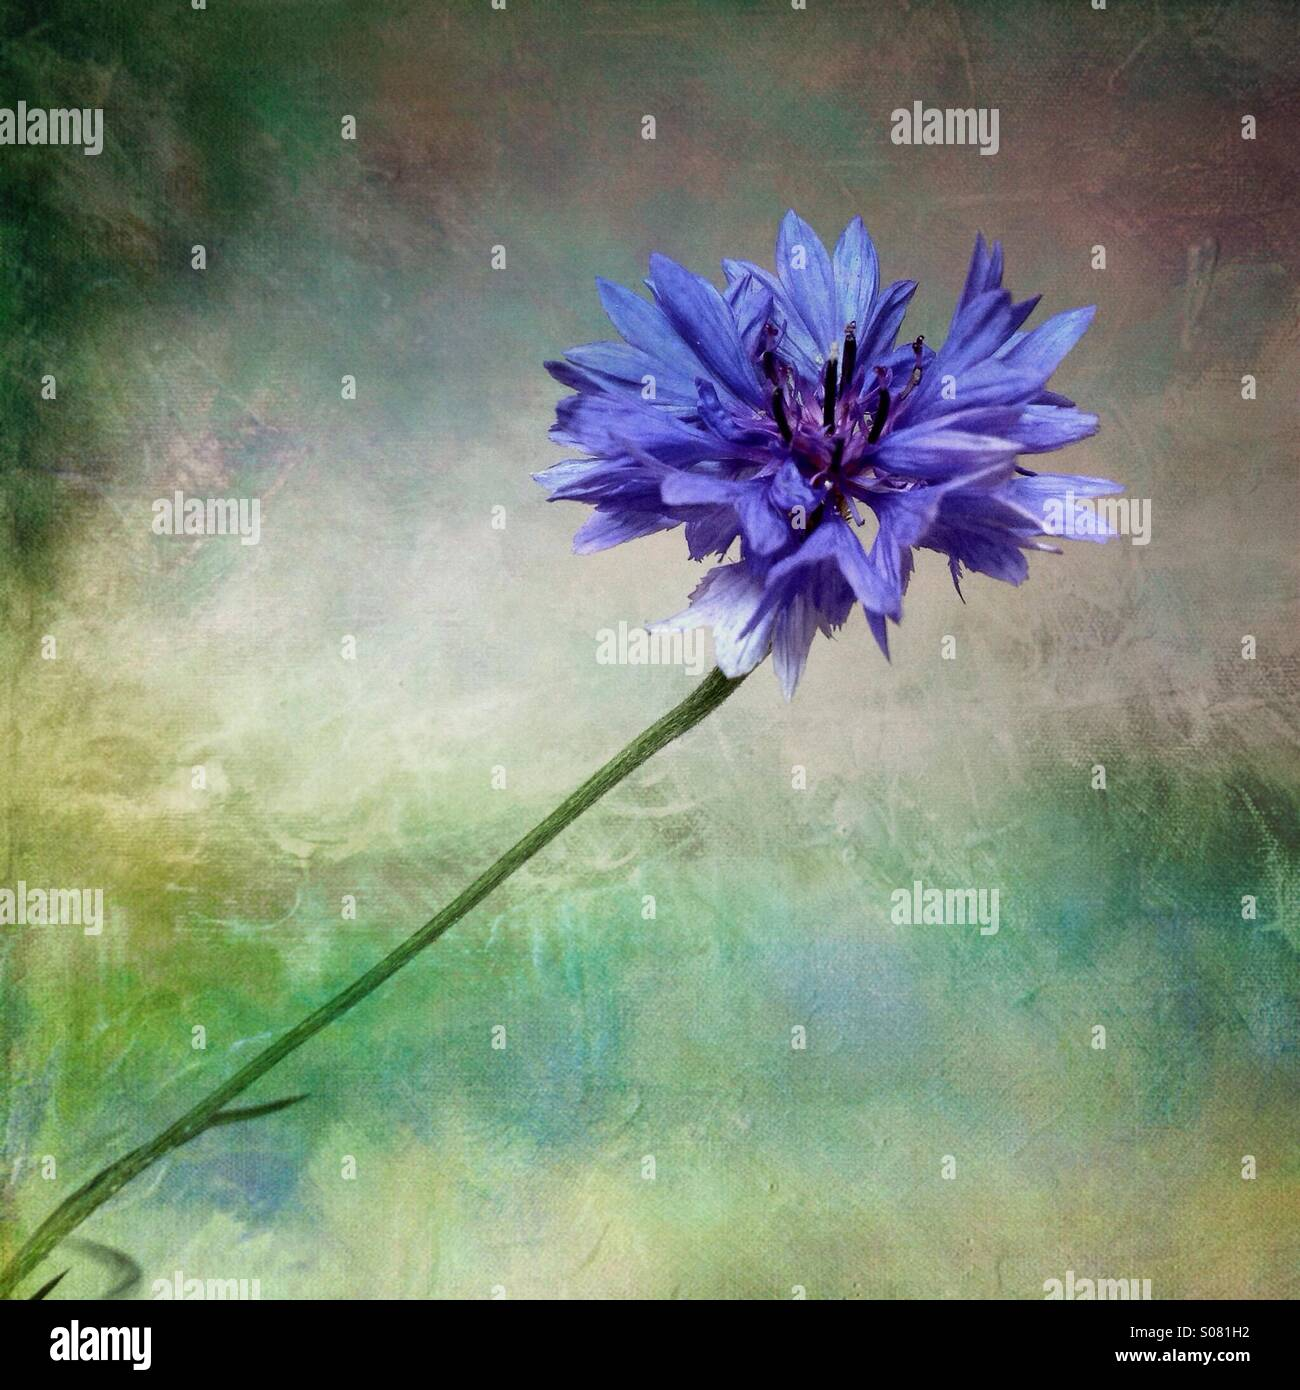 Blue flower with artistic background - Stock Image